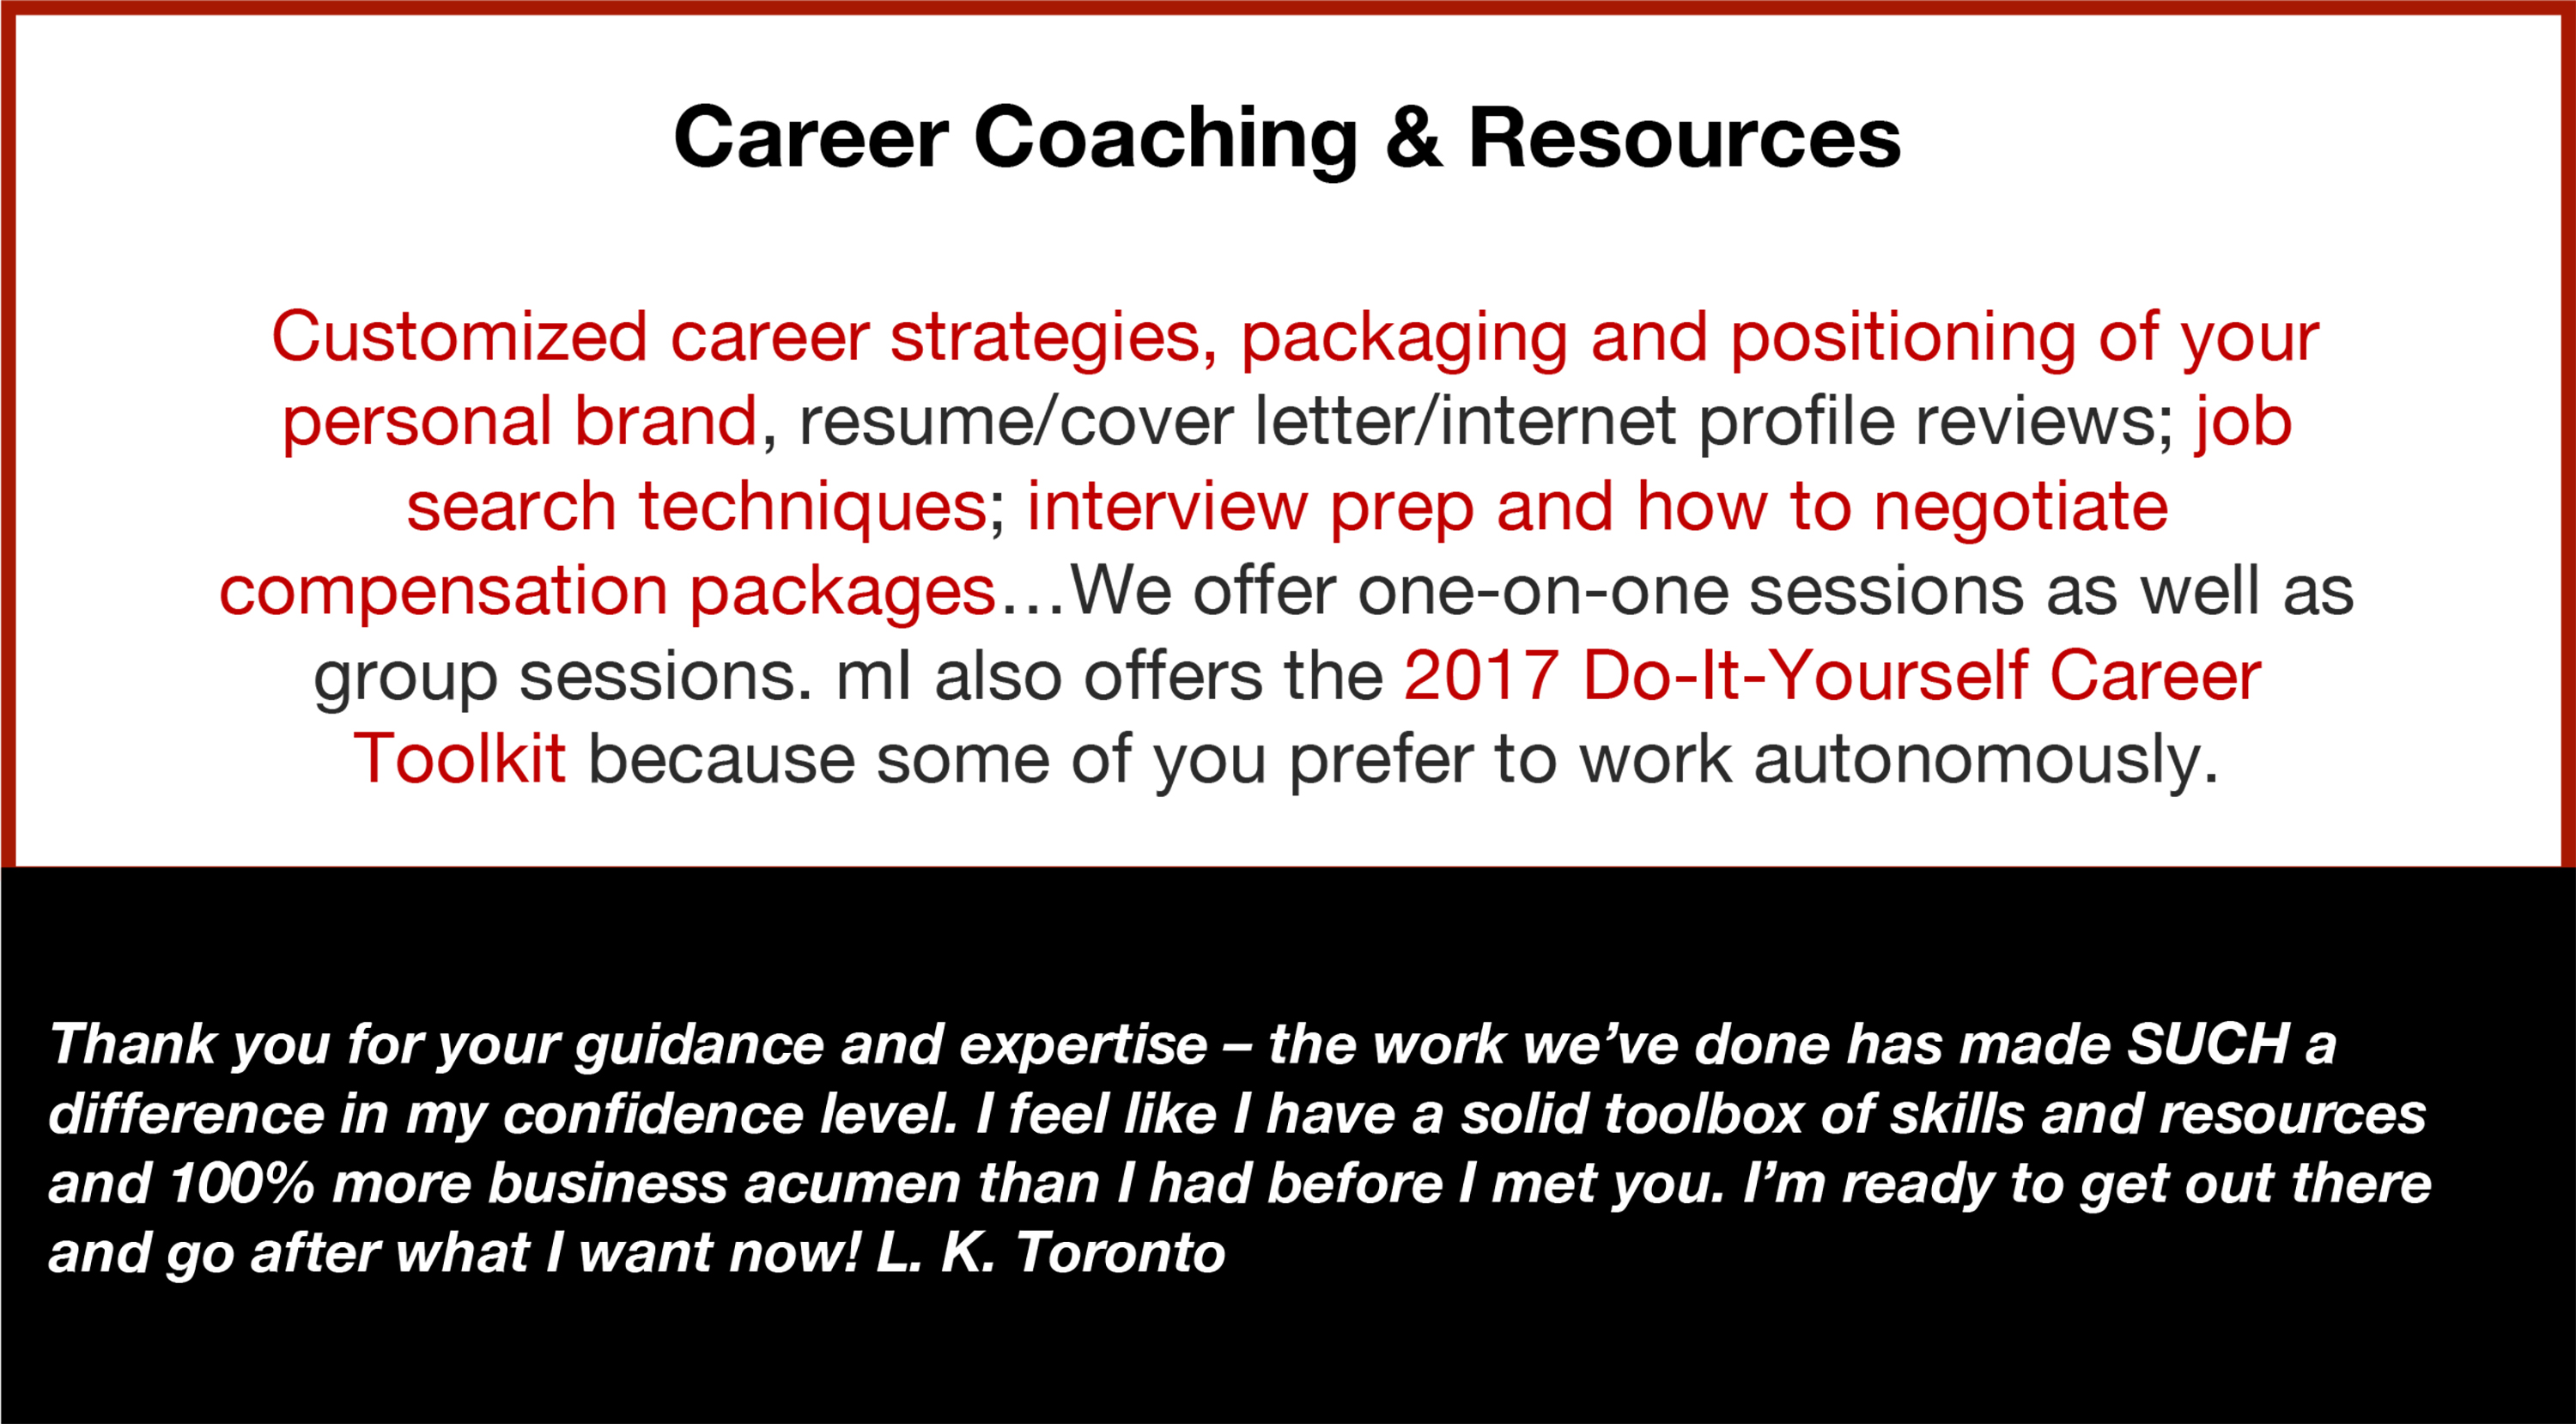 Career Services, Coaching, Resources, Strategies, Positioning, Brand